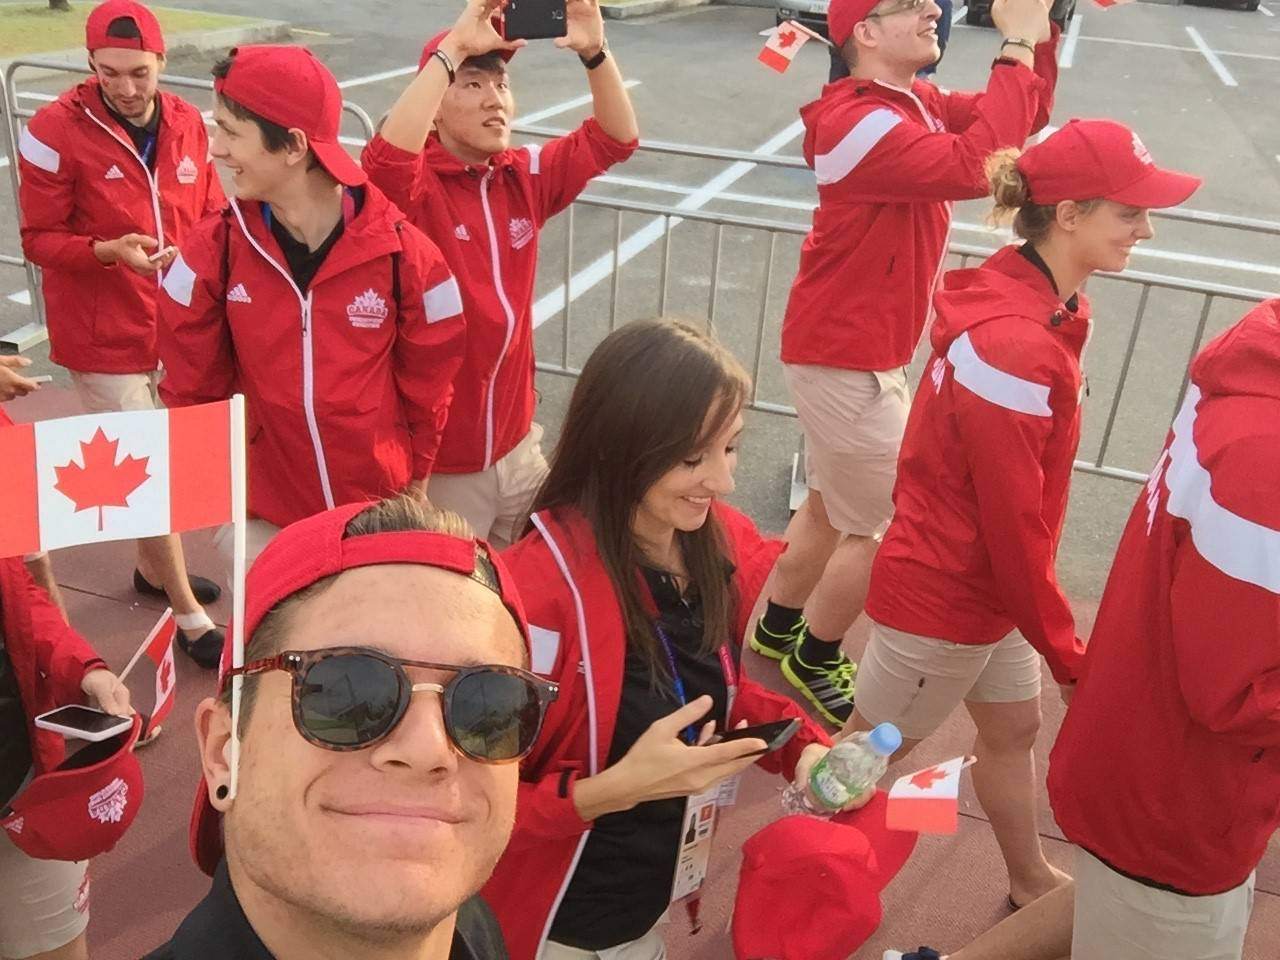 Dylan Grisell captures a selfie as Team Canada is called to march.